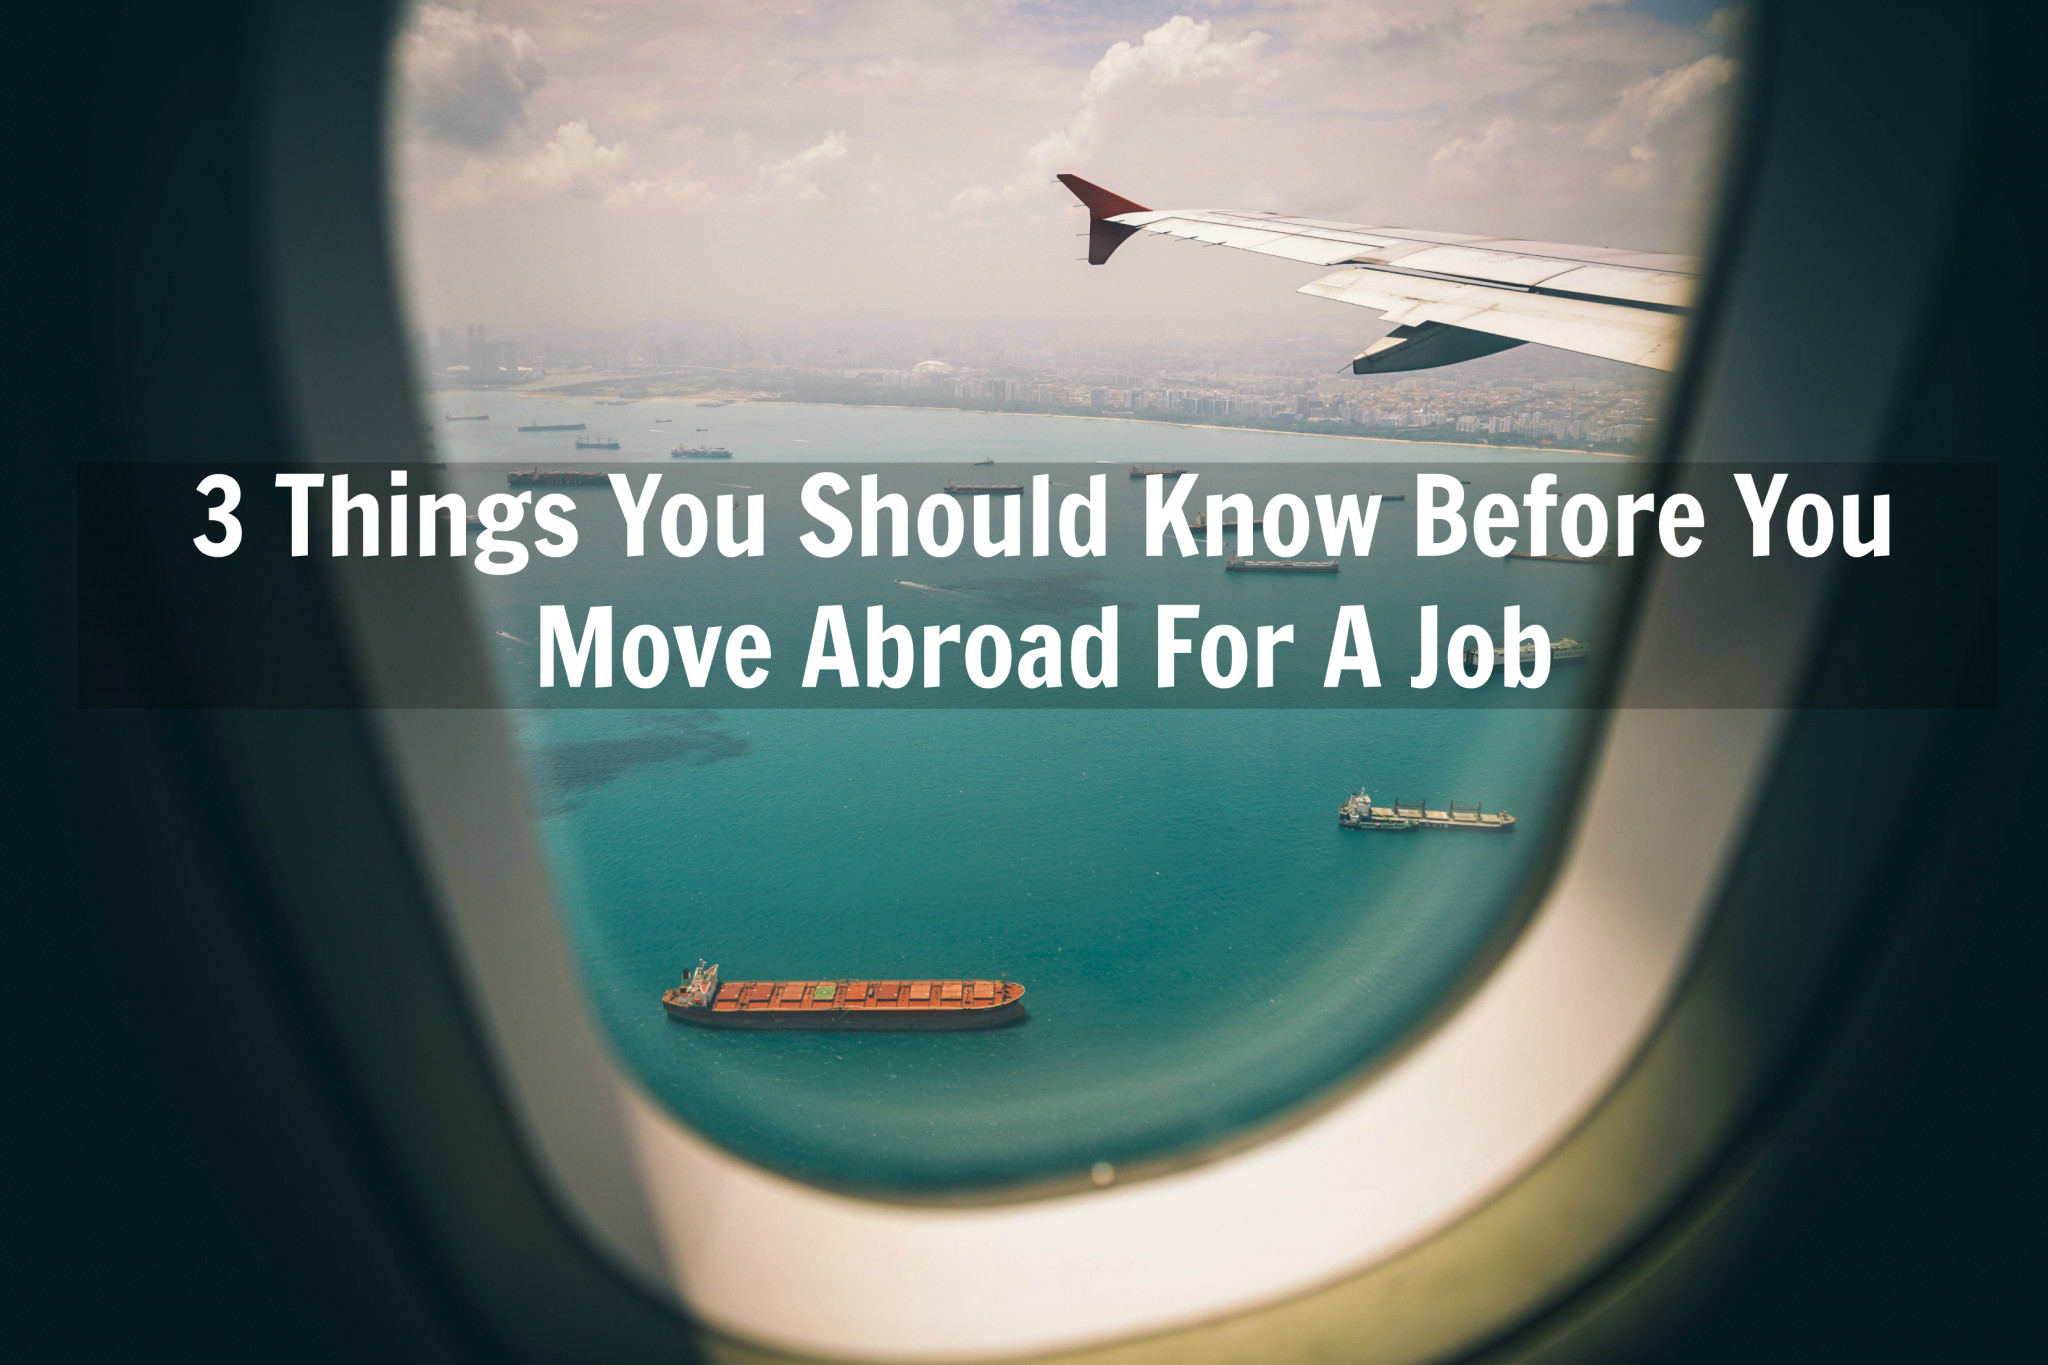 3 Things You Should Know Before You Move Abroad For A Job